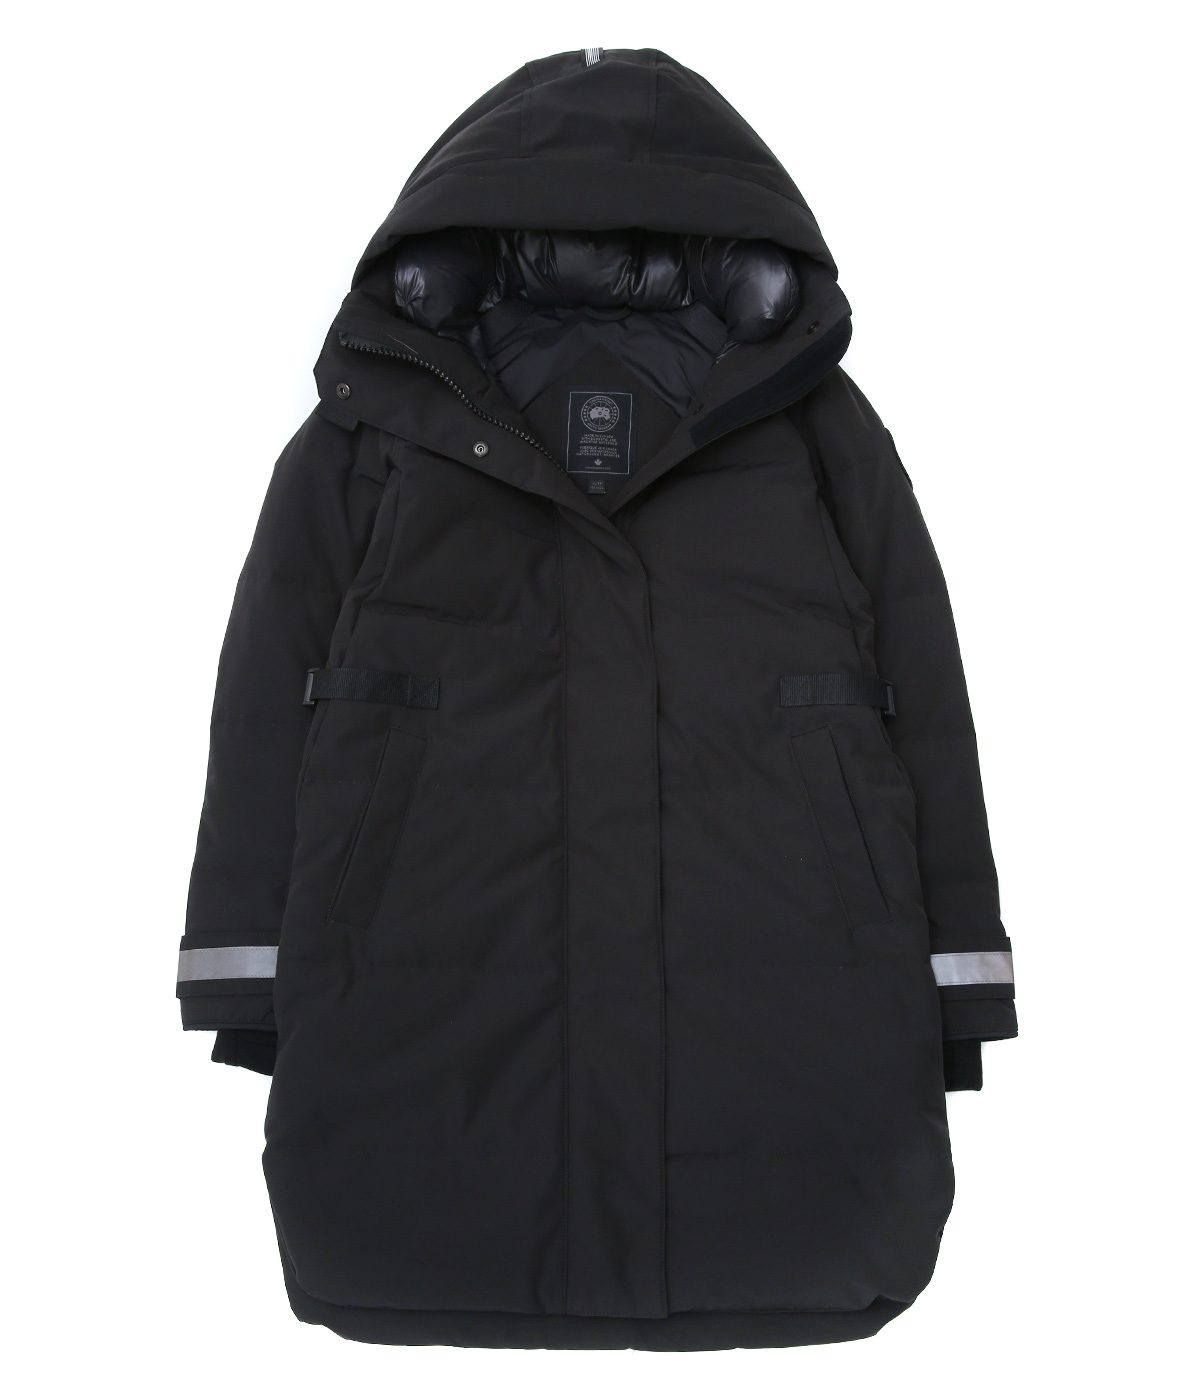 【レディース】<BENNETT PARKA(ベネット パーカー)>-BLACK LABEL/BLACK DISC-